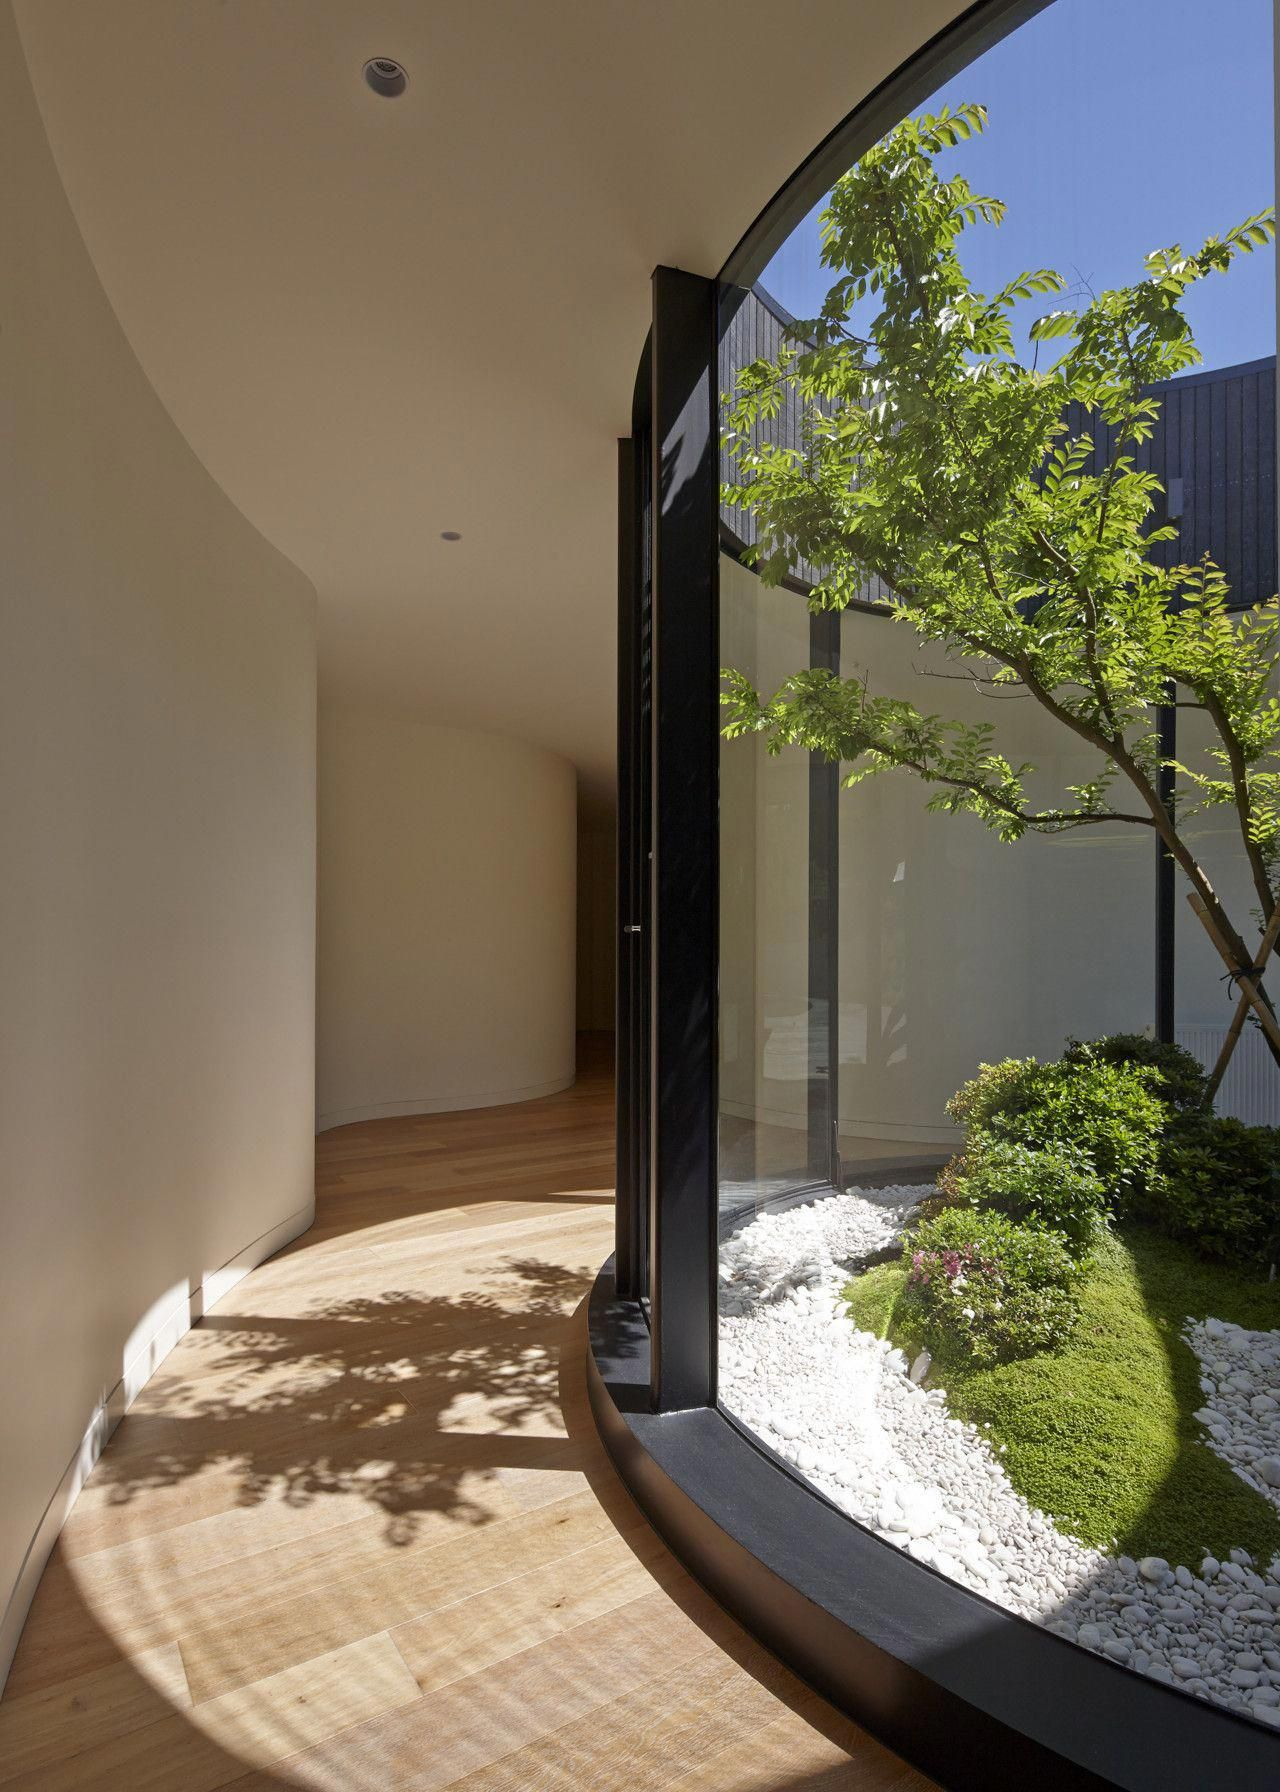 Wood marsh architects portsea house melbourne architecture australia houseinteriordesign